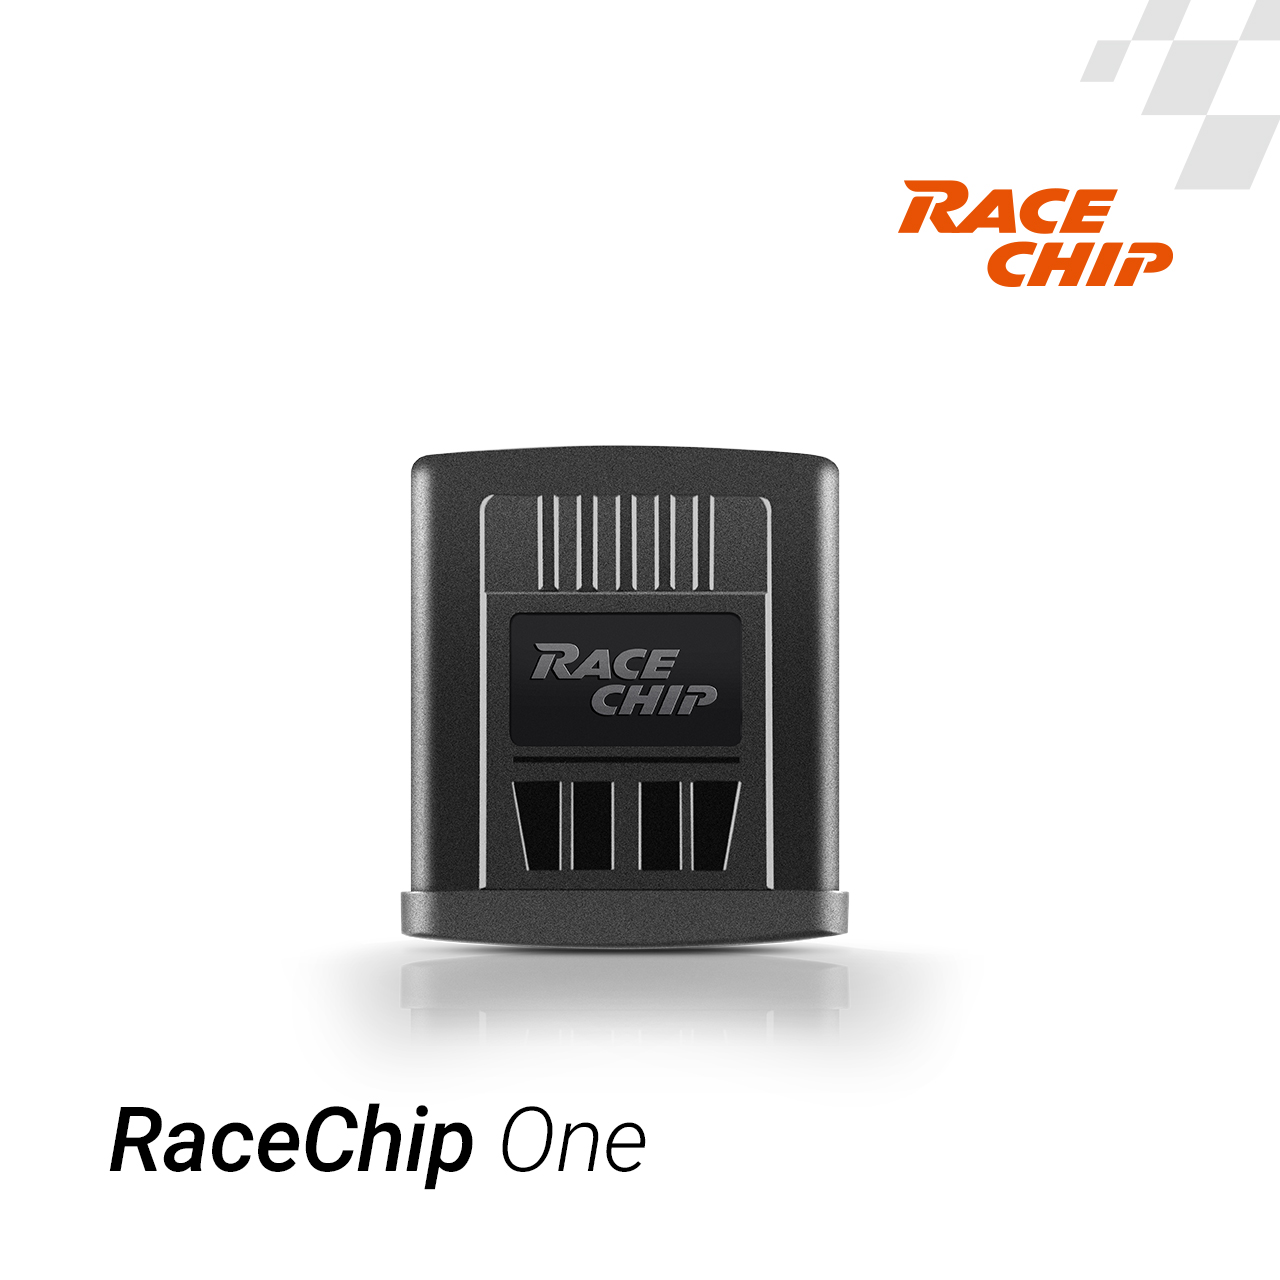 RaceChip One